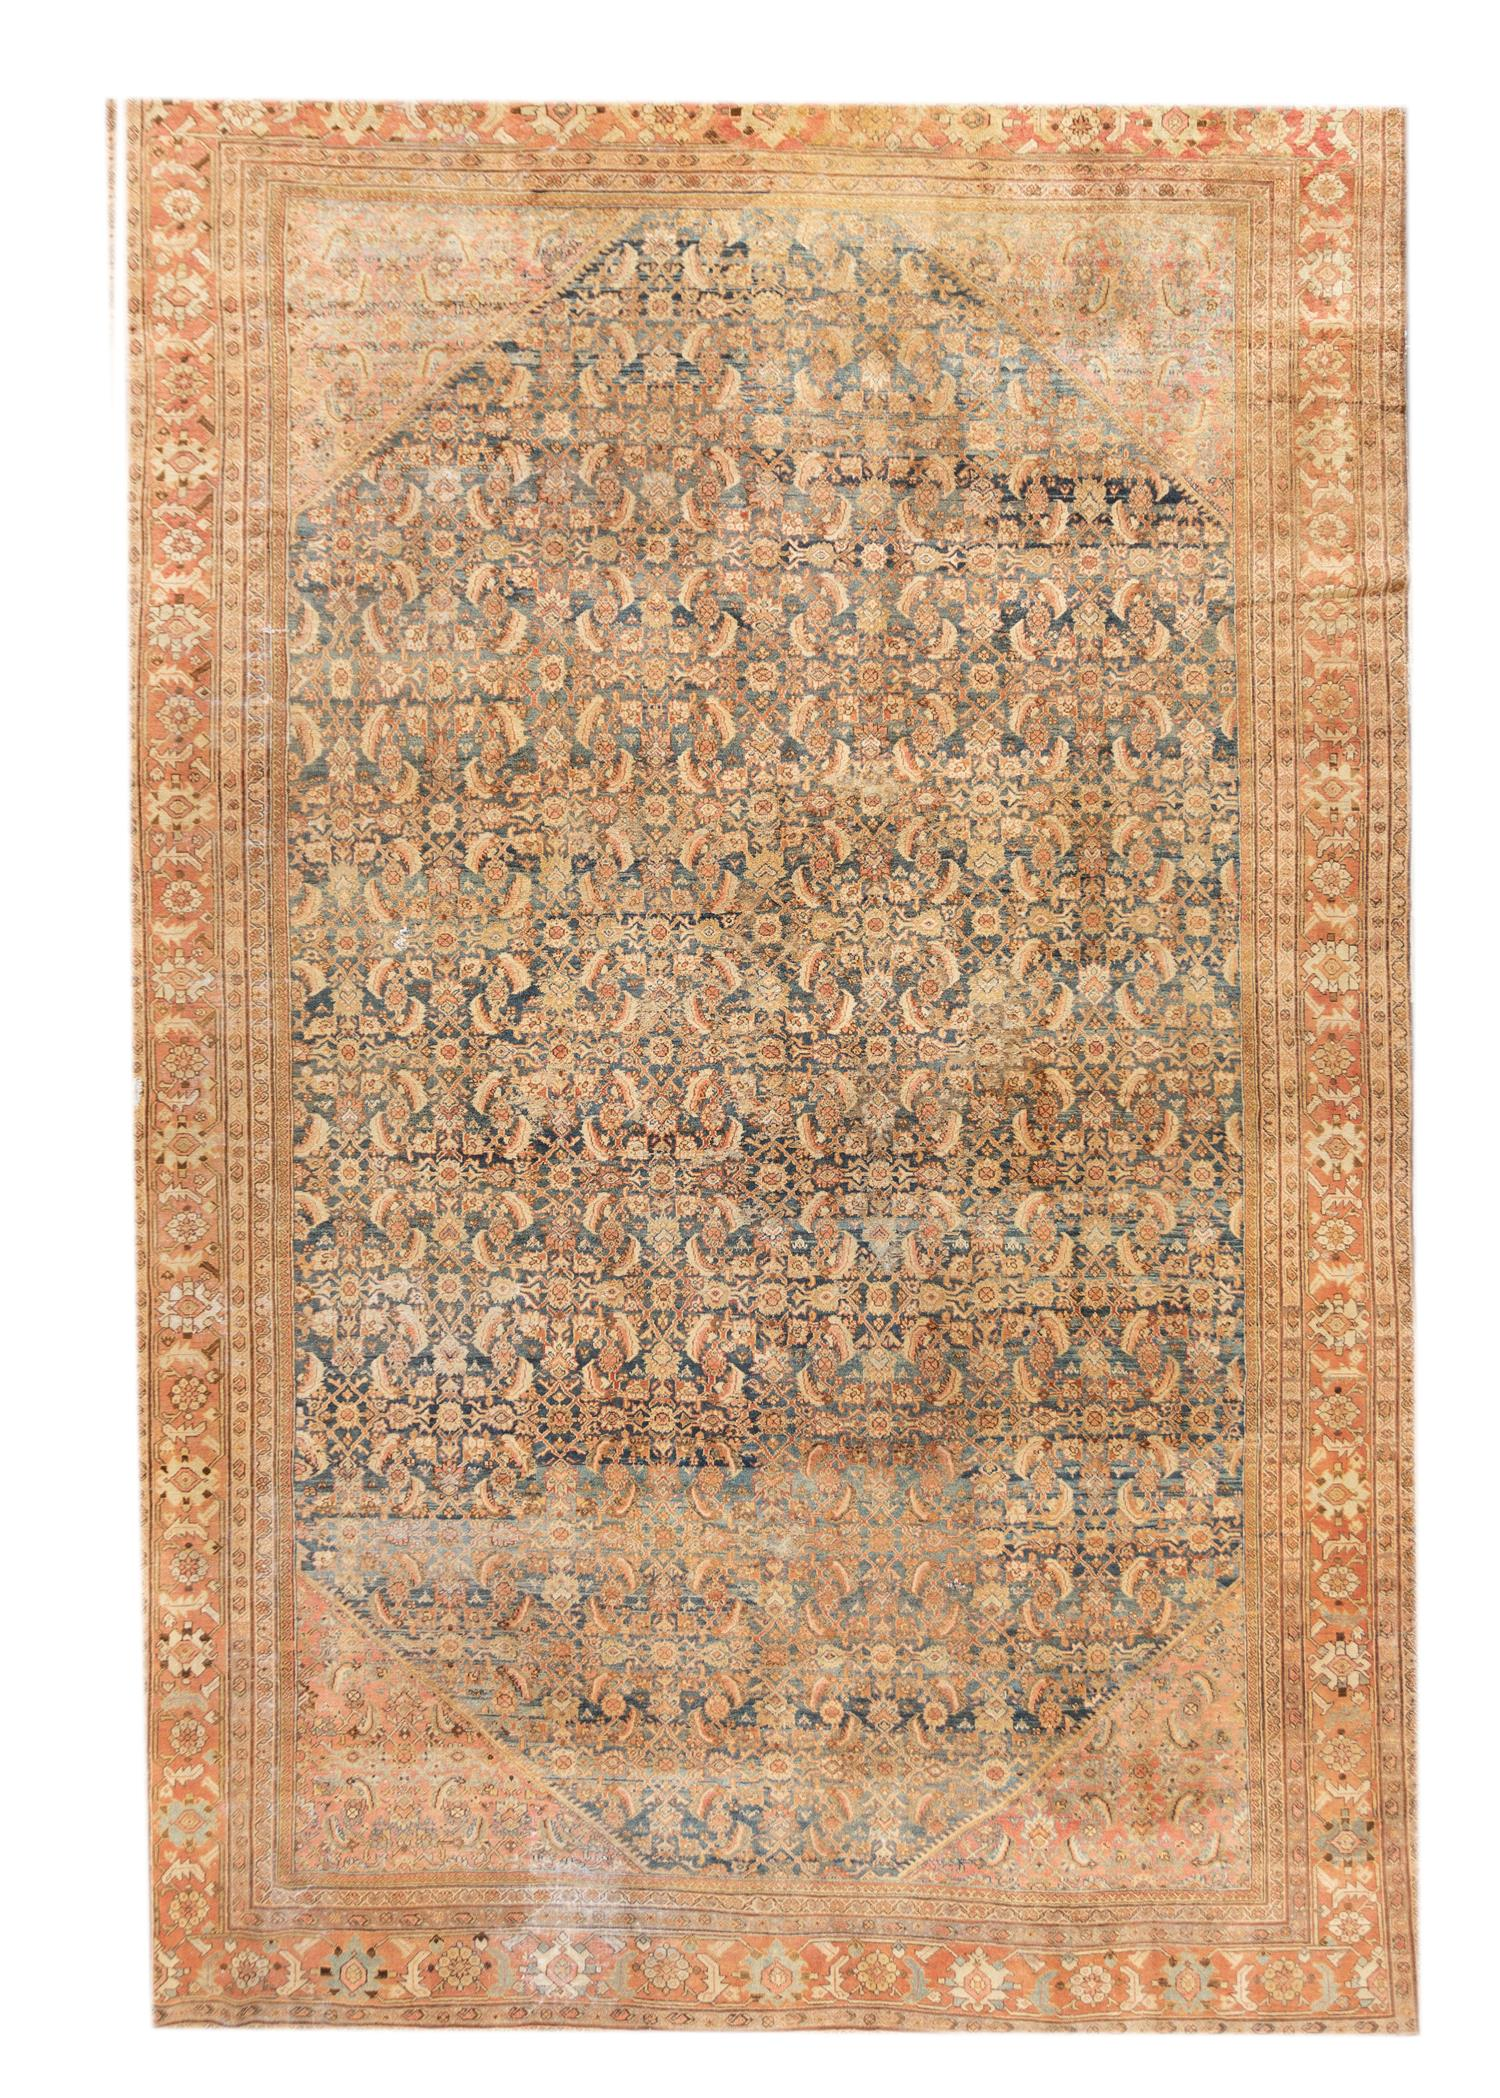 20th Century Antique Mahal Rug, 13X20